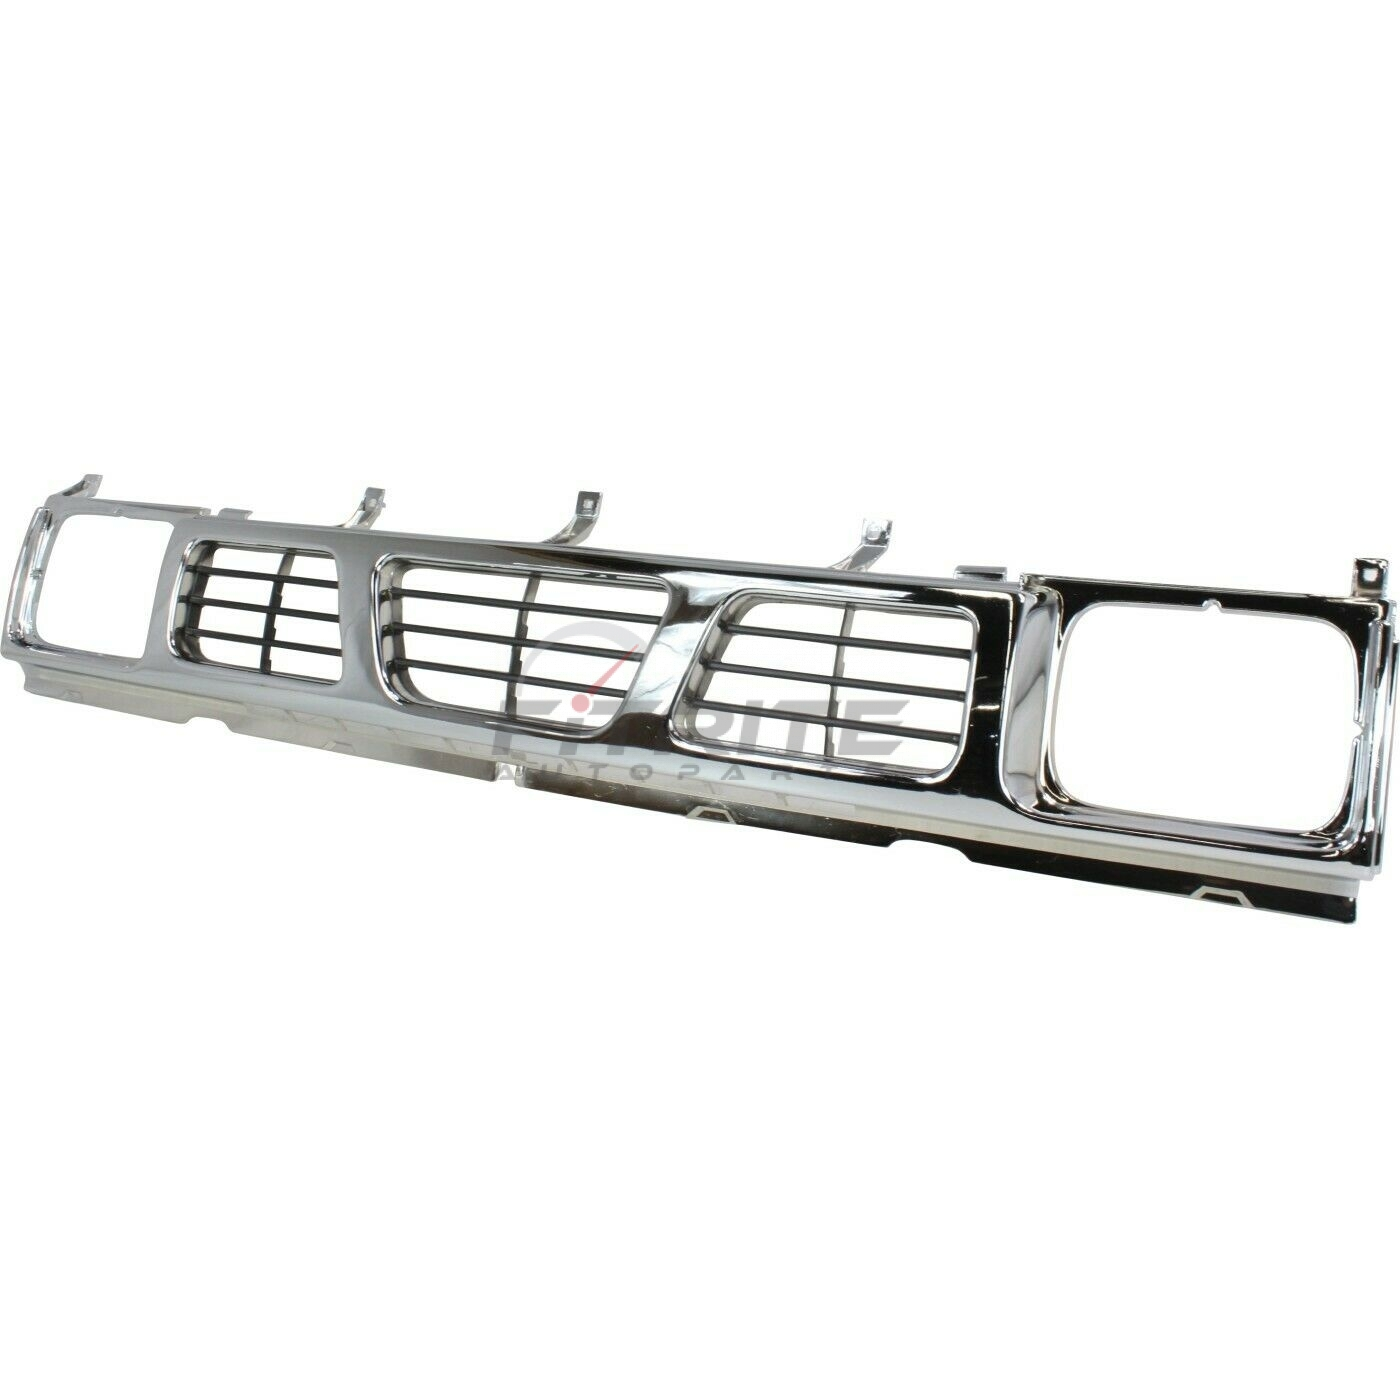 New Grille Chrome / Dark Silver Fits Nissan D21 1993-1994